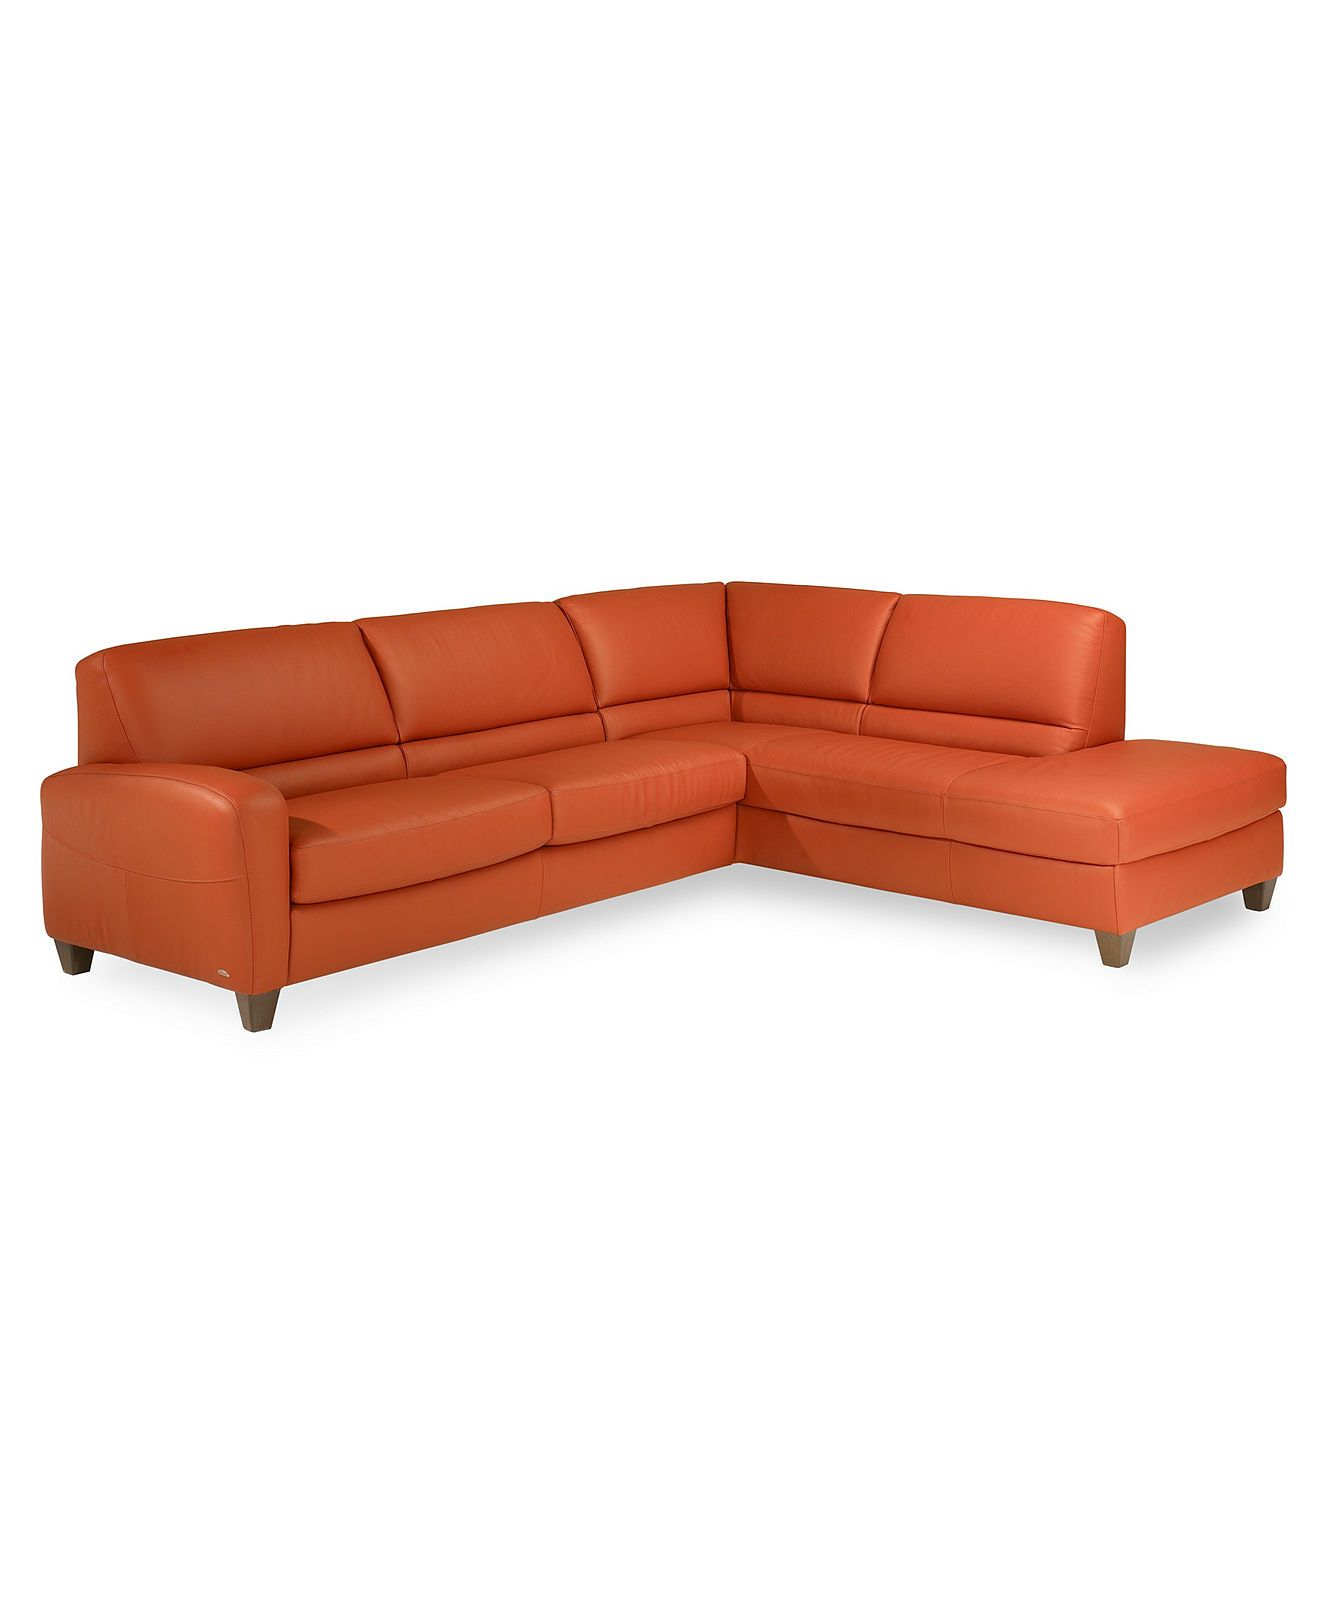 Italsofa Sectional Sleeper Sofa Leather Sofas Bed Brick Fireplace